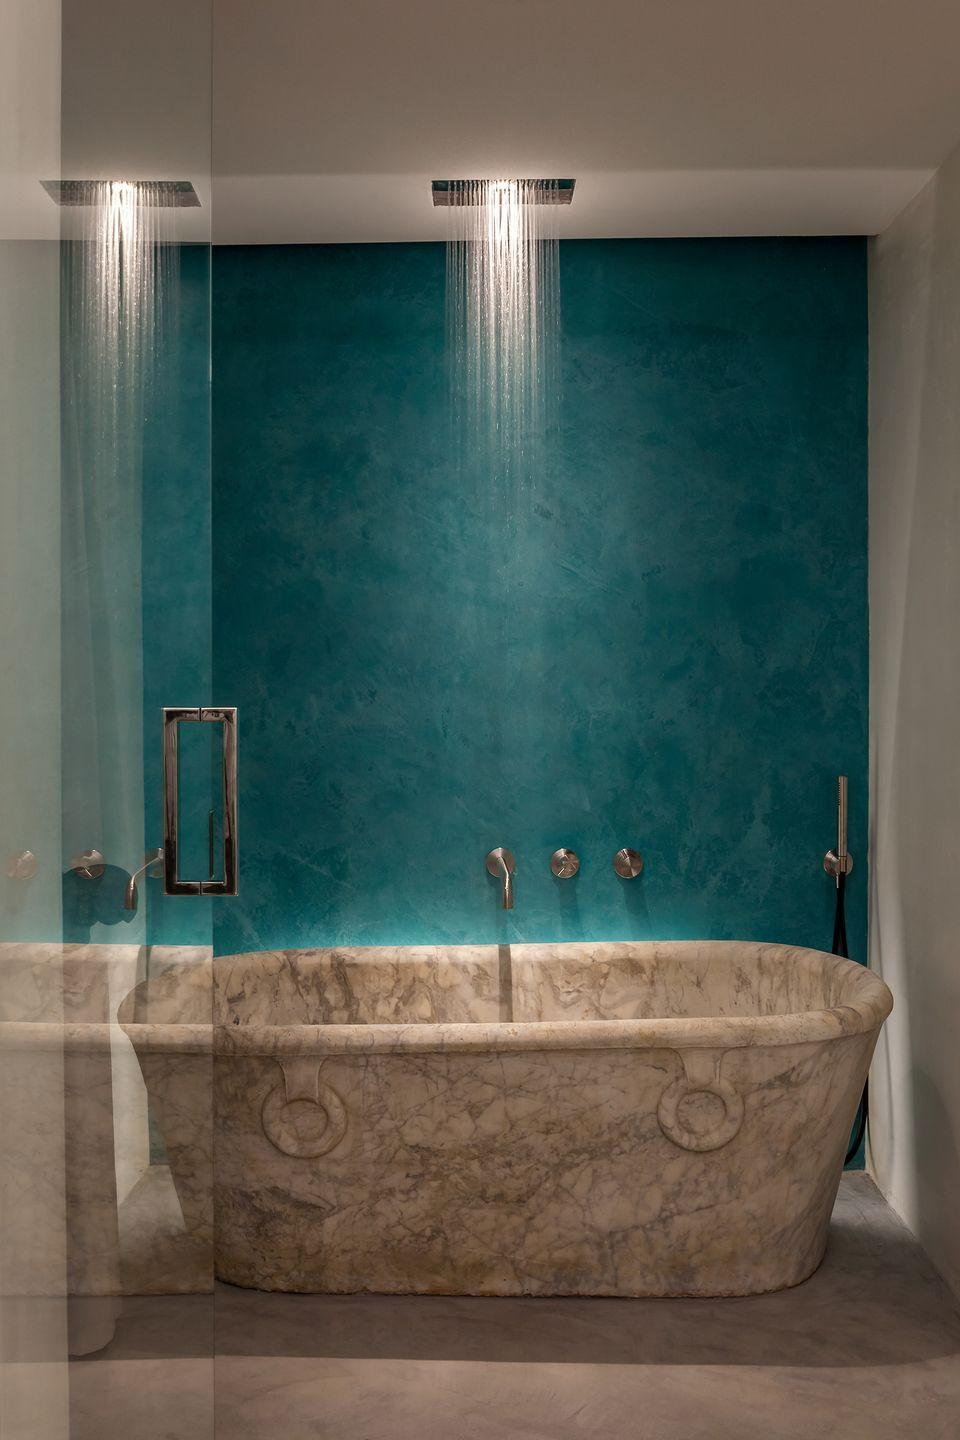 """<p>While <a href=""""https://www.veranda.com/home-decorators/g28539782/blue-paint-colors/"""" rel=""""nofollow noopener"""" target=""""_blank"""" data-ylk=""""slk:blue is a favorite wall color"""" class=""""link rapid-noclick-resp"""">blue is a favorite wall color</a> for creating a serene space, the color turquoise specifically offers a feeling of refreshment, energy, and joy. We love the rich hue featured in this <a href=""""https://www.thethinkingtraveller.com/aifaraglioni"""" rel=""""nofollow noopener"""" target=""""_blank"""" data-ylk=""""slk:Ai Faraglioni"""" class=""""link rapid-noclick-resp"""">Ai Faraglioni</a> villa on the coast of Sicily. This stunning bathroom echoes its surroundings overlooking the Mediterranean Sea and makes the dramatic marble bathtub stand out even more. </p>"""